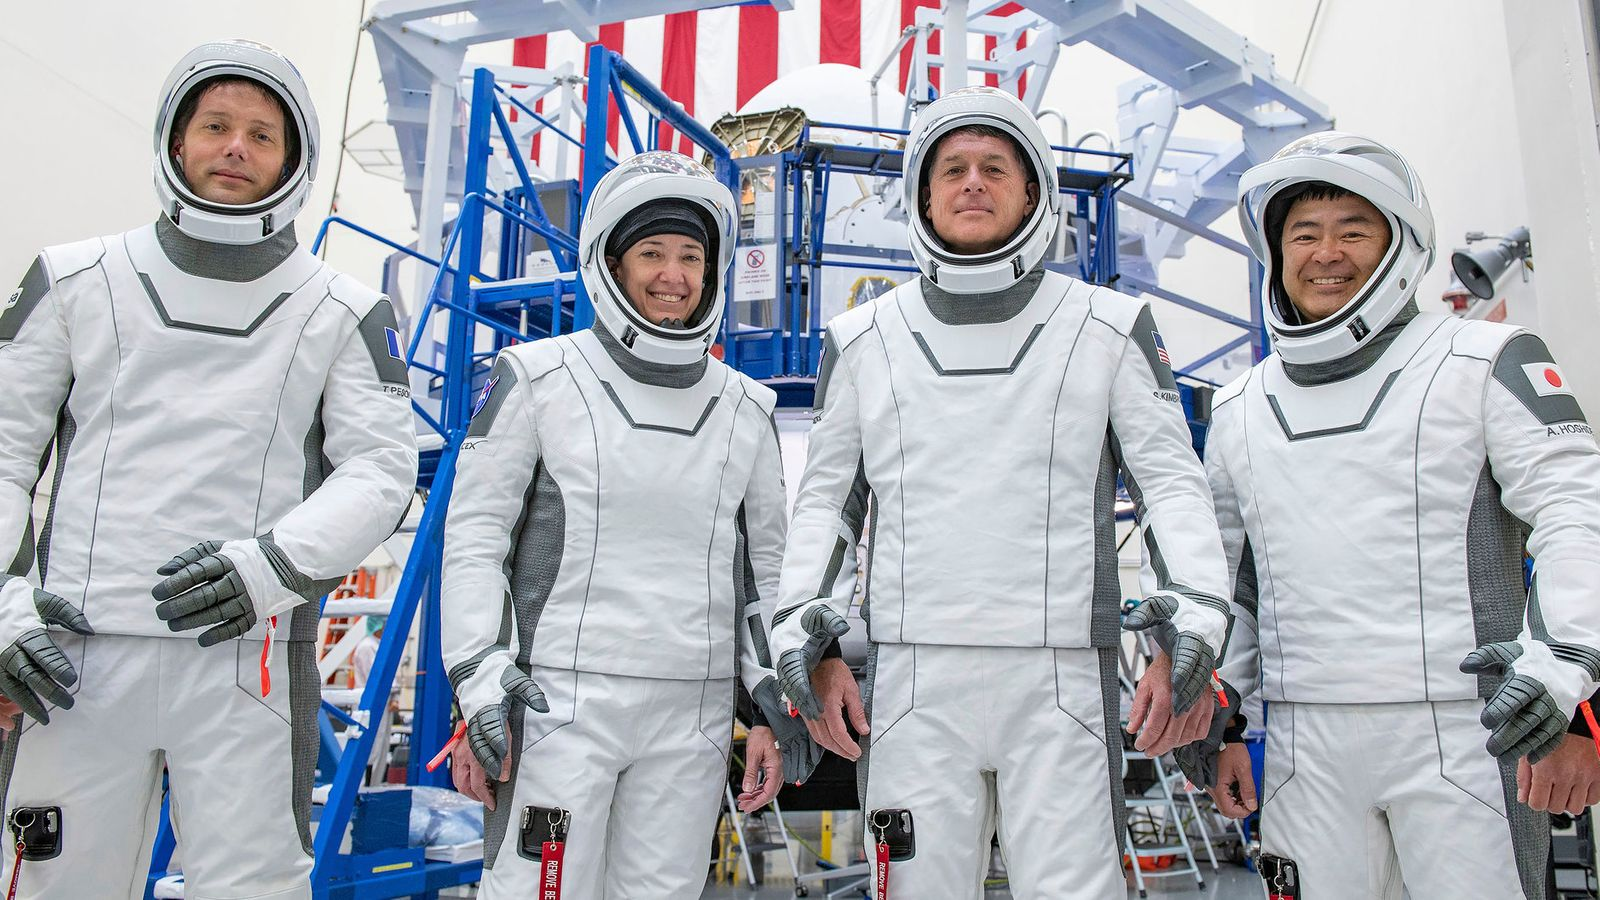 The crew for its SpaceX's third astronaut launch to the International Space Station in training in California